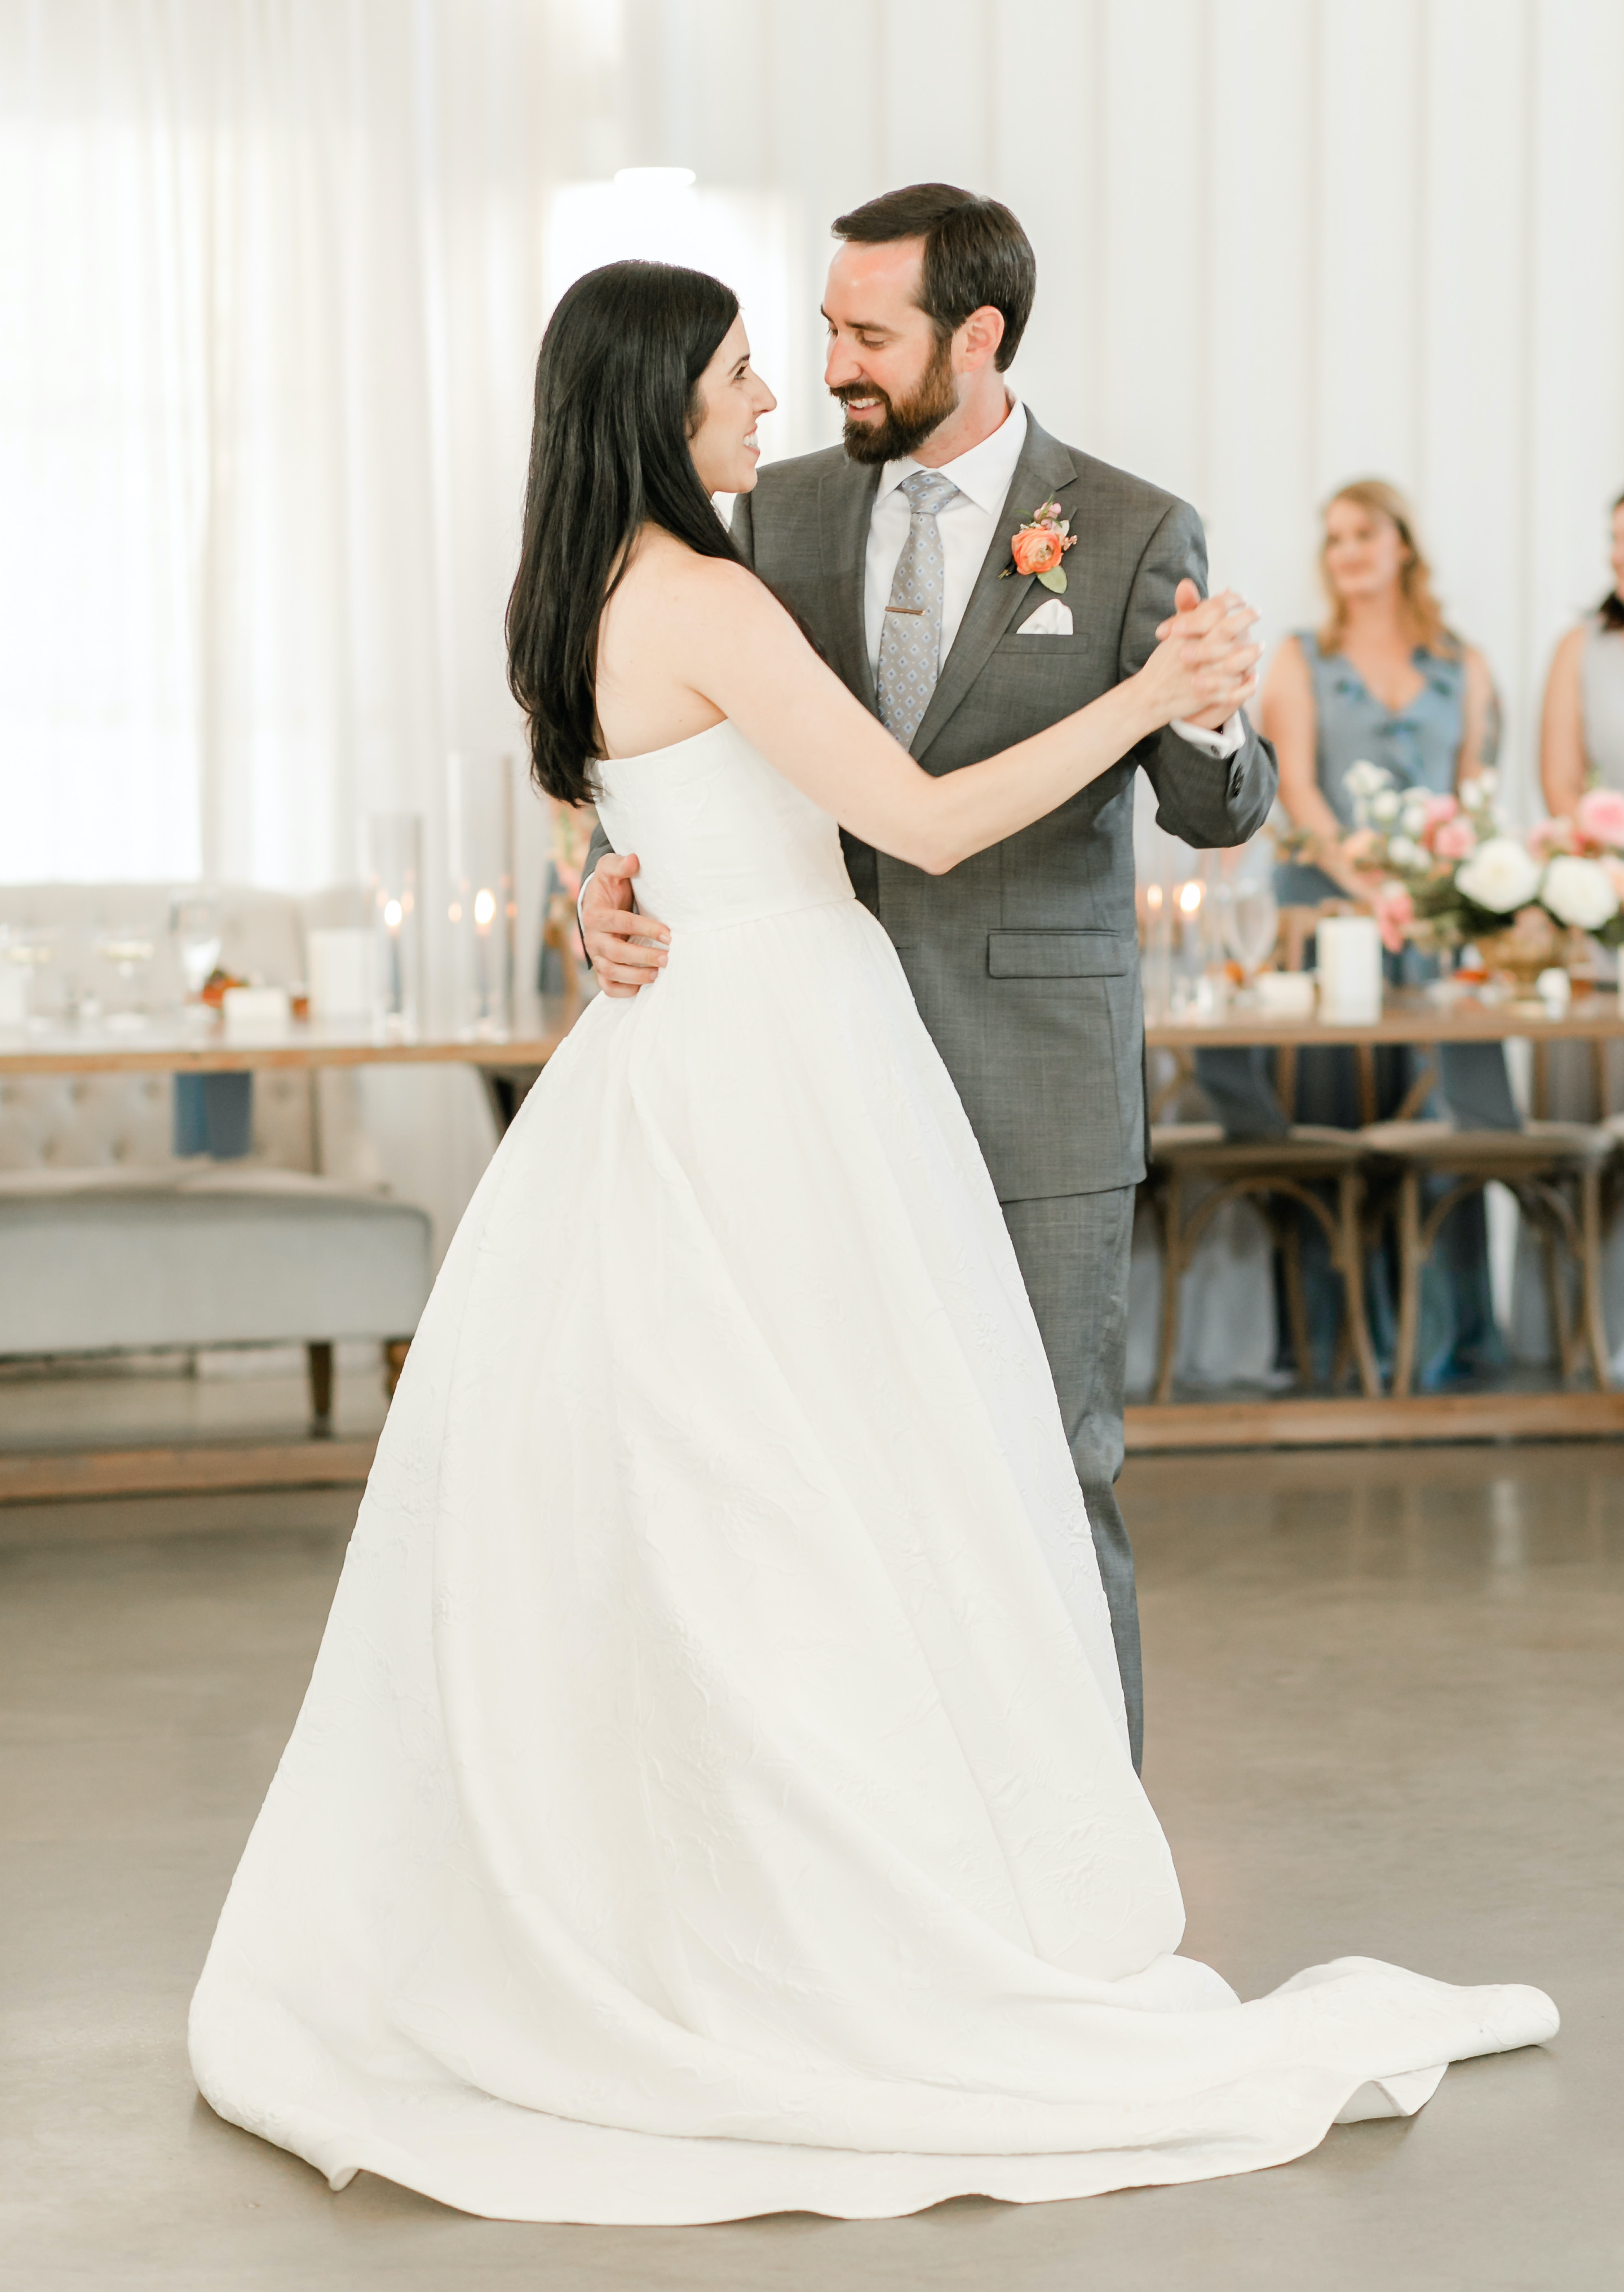 The bride and groom dance in the reception room.